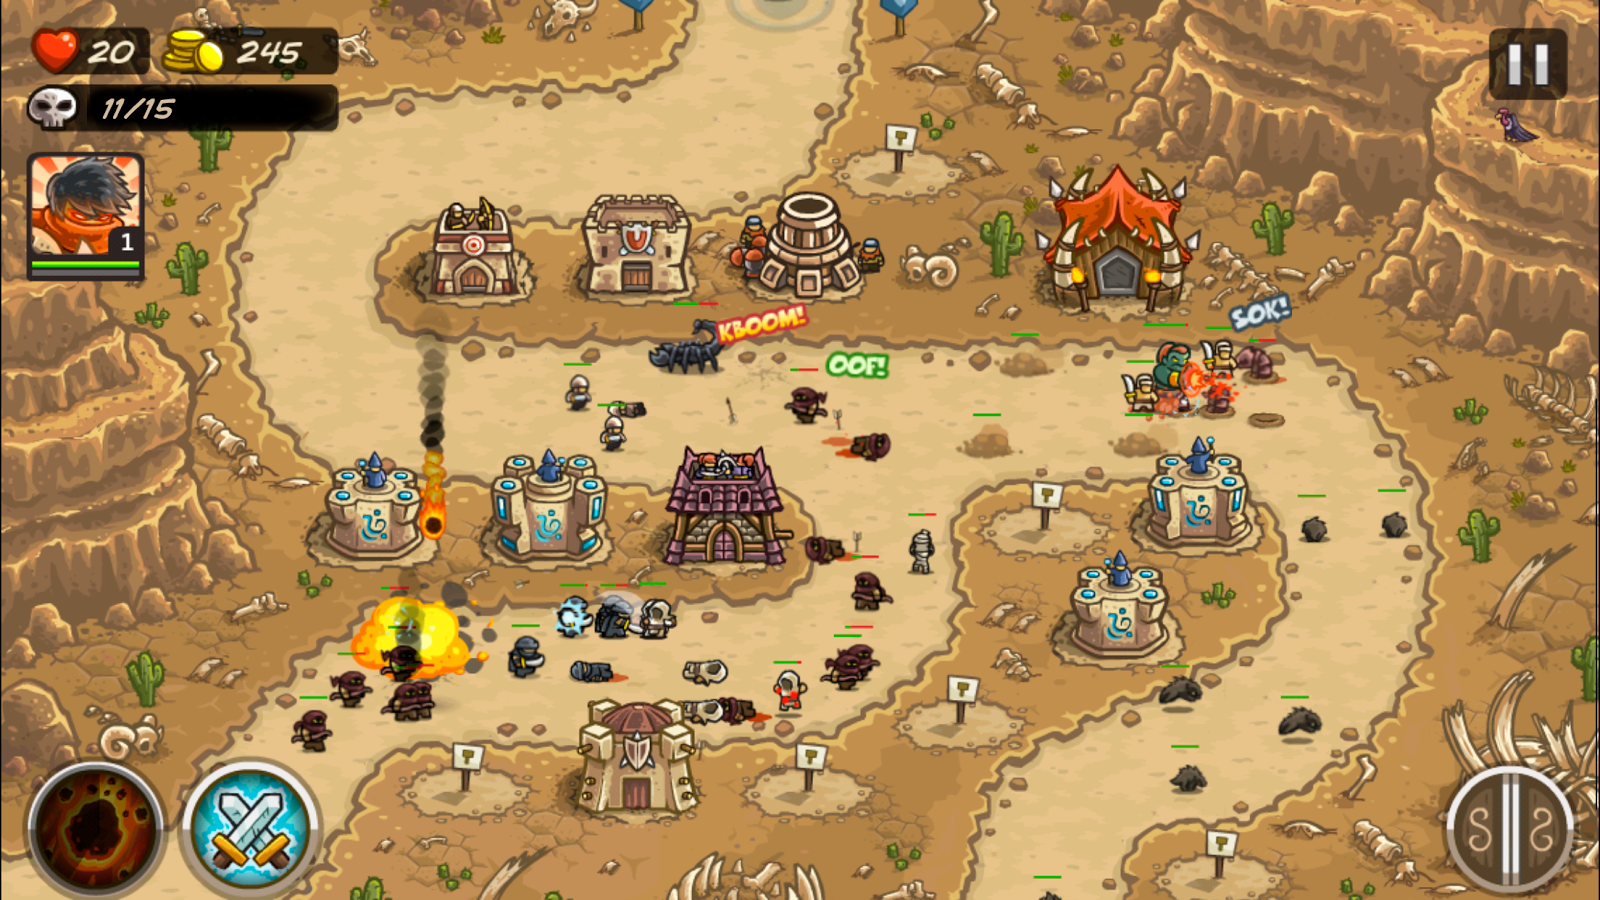 Kingdom rush frontiers review - Kingdom Rush Frontiers Screenshot